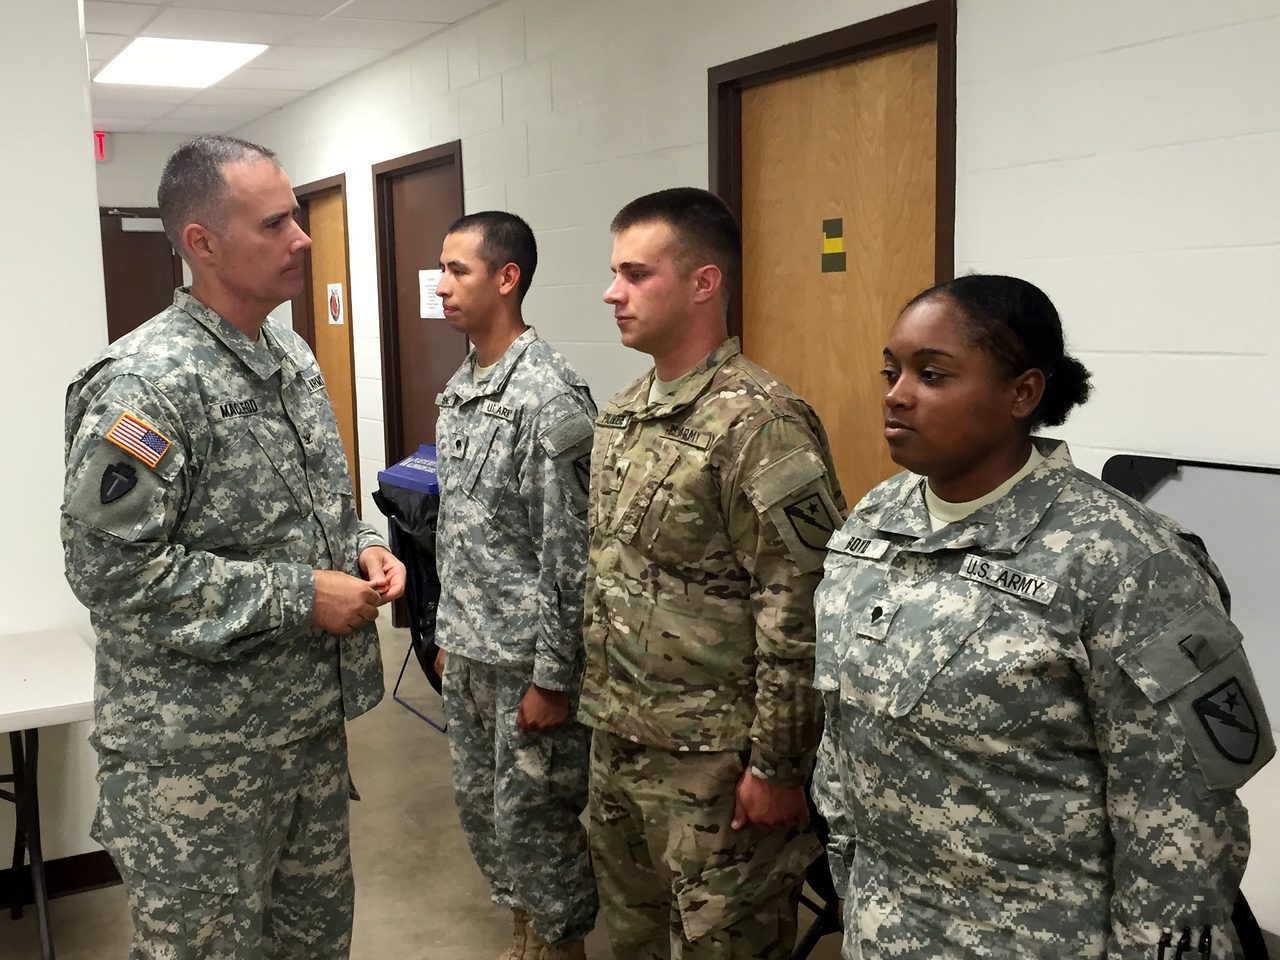 Col. Scott Mac Leod, commander of Joint Task Force 136 (Maneuver Enhancement Brigade), presents his commander's coin to members of the 136th Expeditionary Signal Battalion during his visit to their mobilization training site in North Fort Hood August 27, 2015. Photo by 1st Lt. Jared Reinhardt.